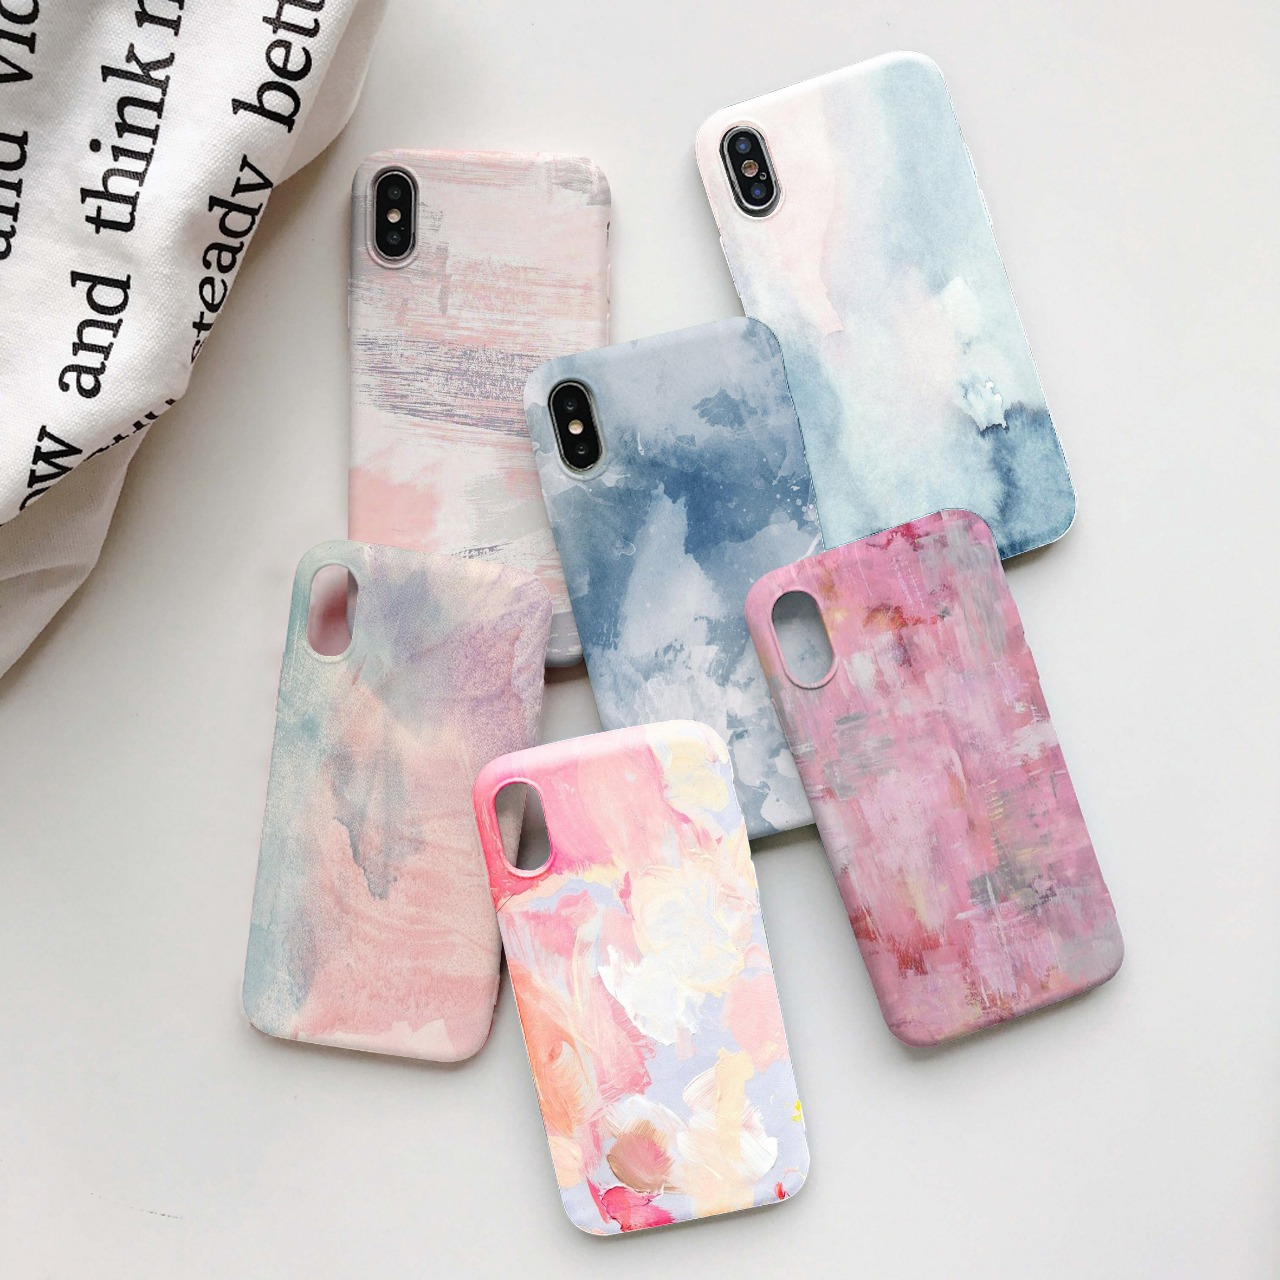 Lion Custome Case #052 Fashion Case GASS  KEKINIAN MURAH  For All Type Case Vivo Samsung Oppo Iphone Asus Lenovo Zenfone Nokia Redmi Xiaomi Realme Case Murah Hardcase Softcase